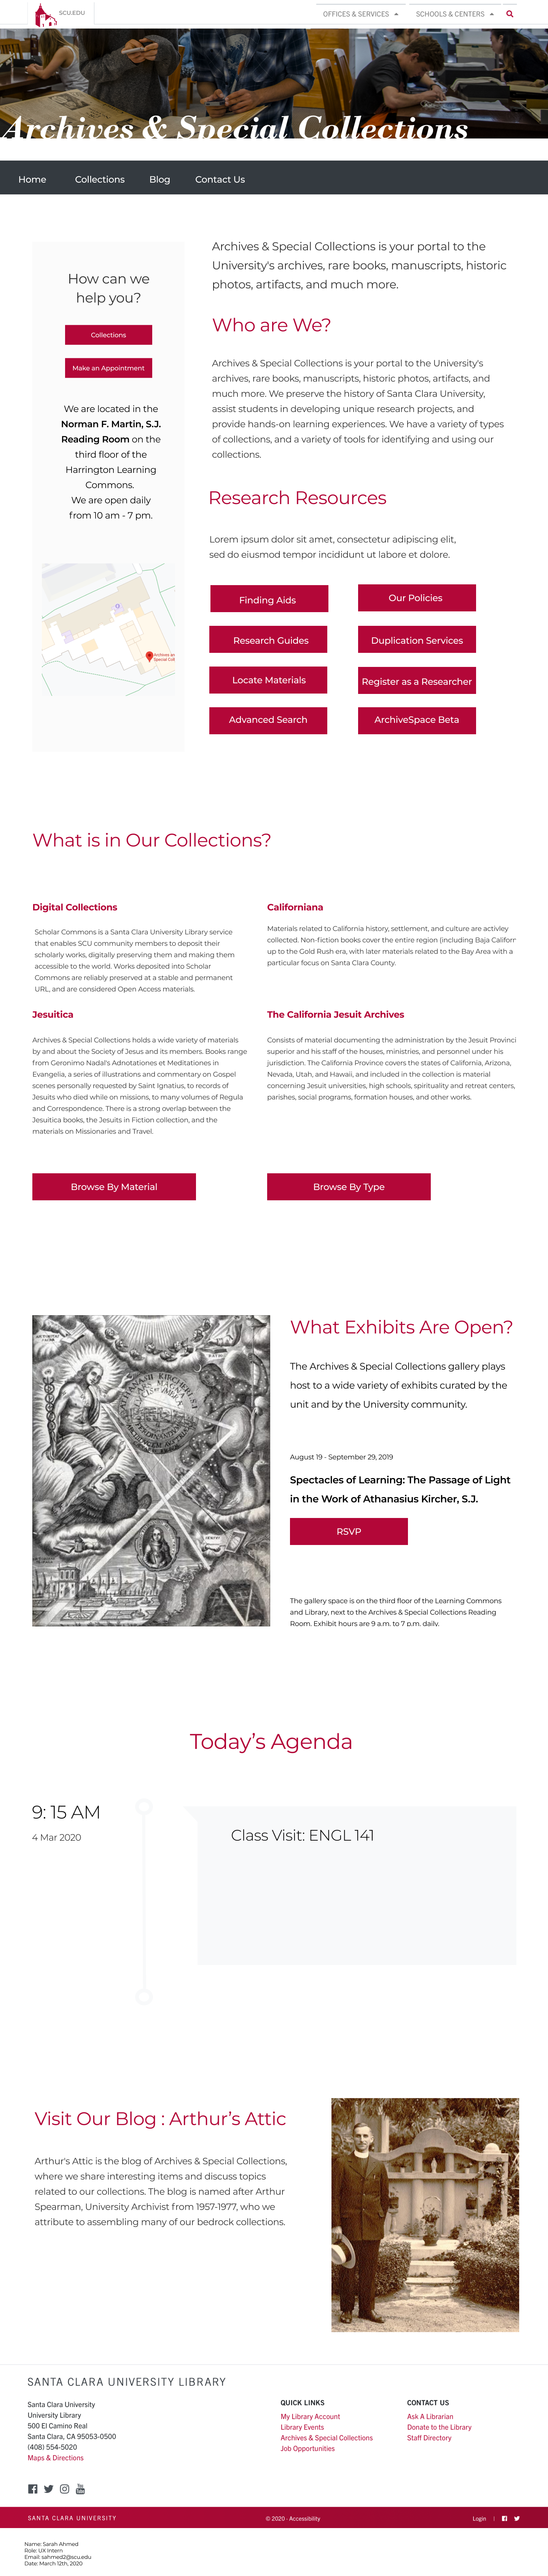 Redesign of the Santa Clara University Archives and Special Collections website.